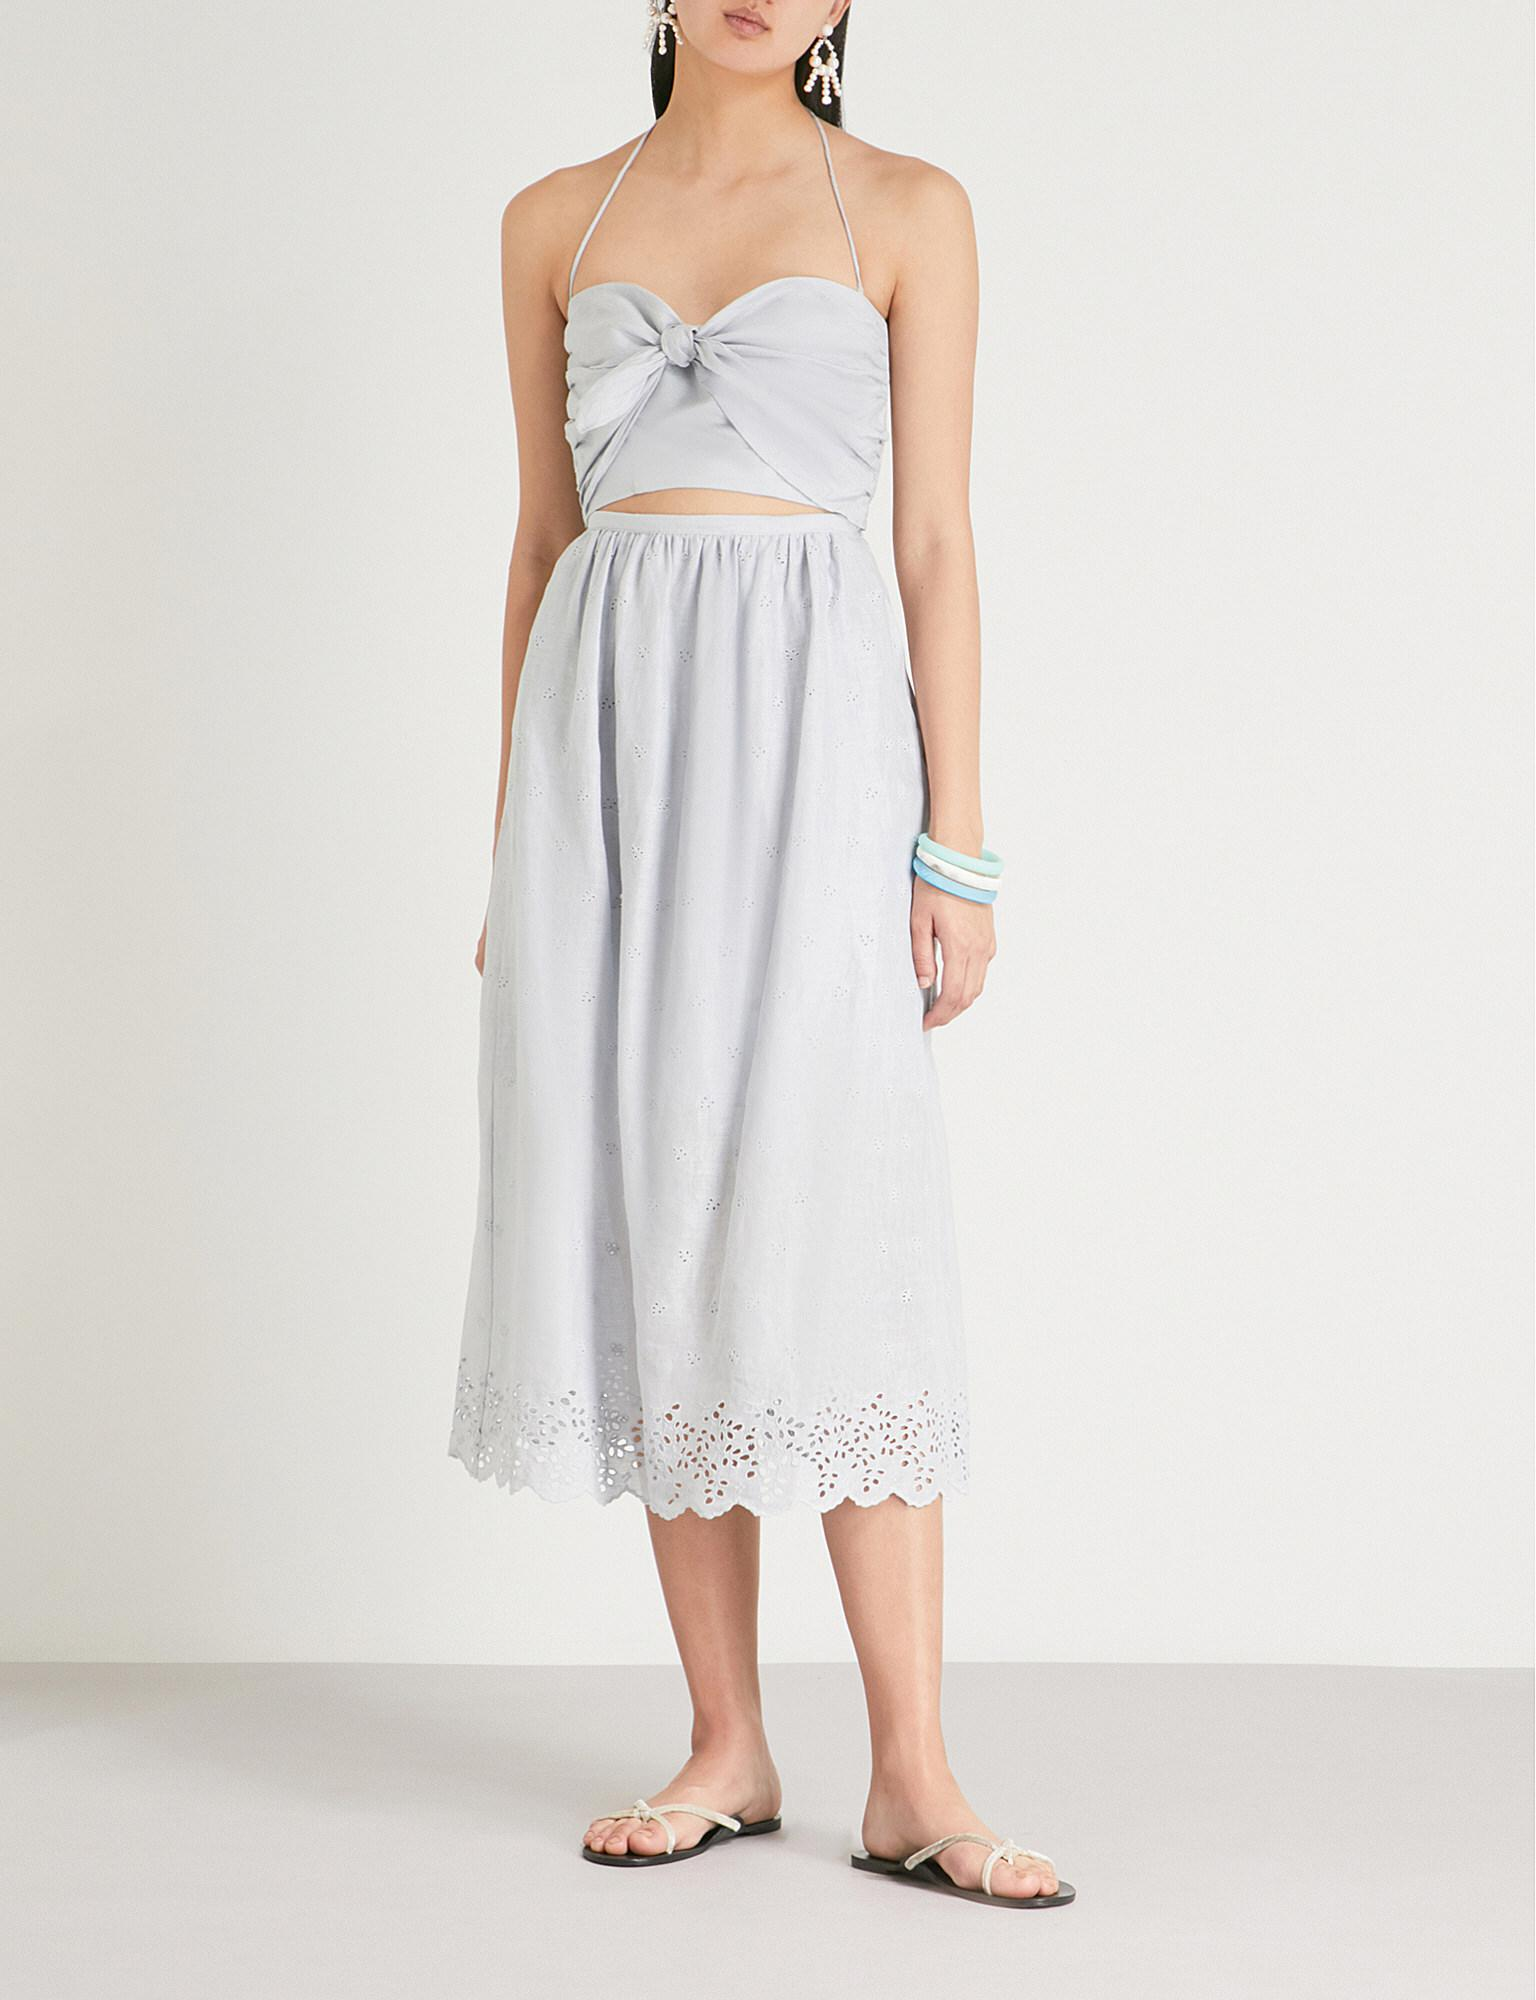 1eb3b5cc81 Zimmermann Iris Embroidered Linen And Cotton-blend Midi Dress in ...